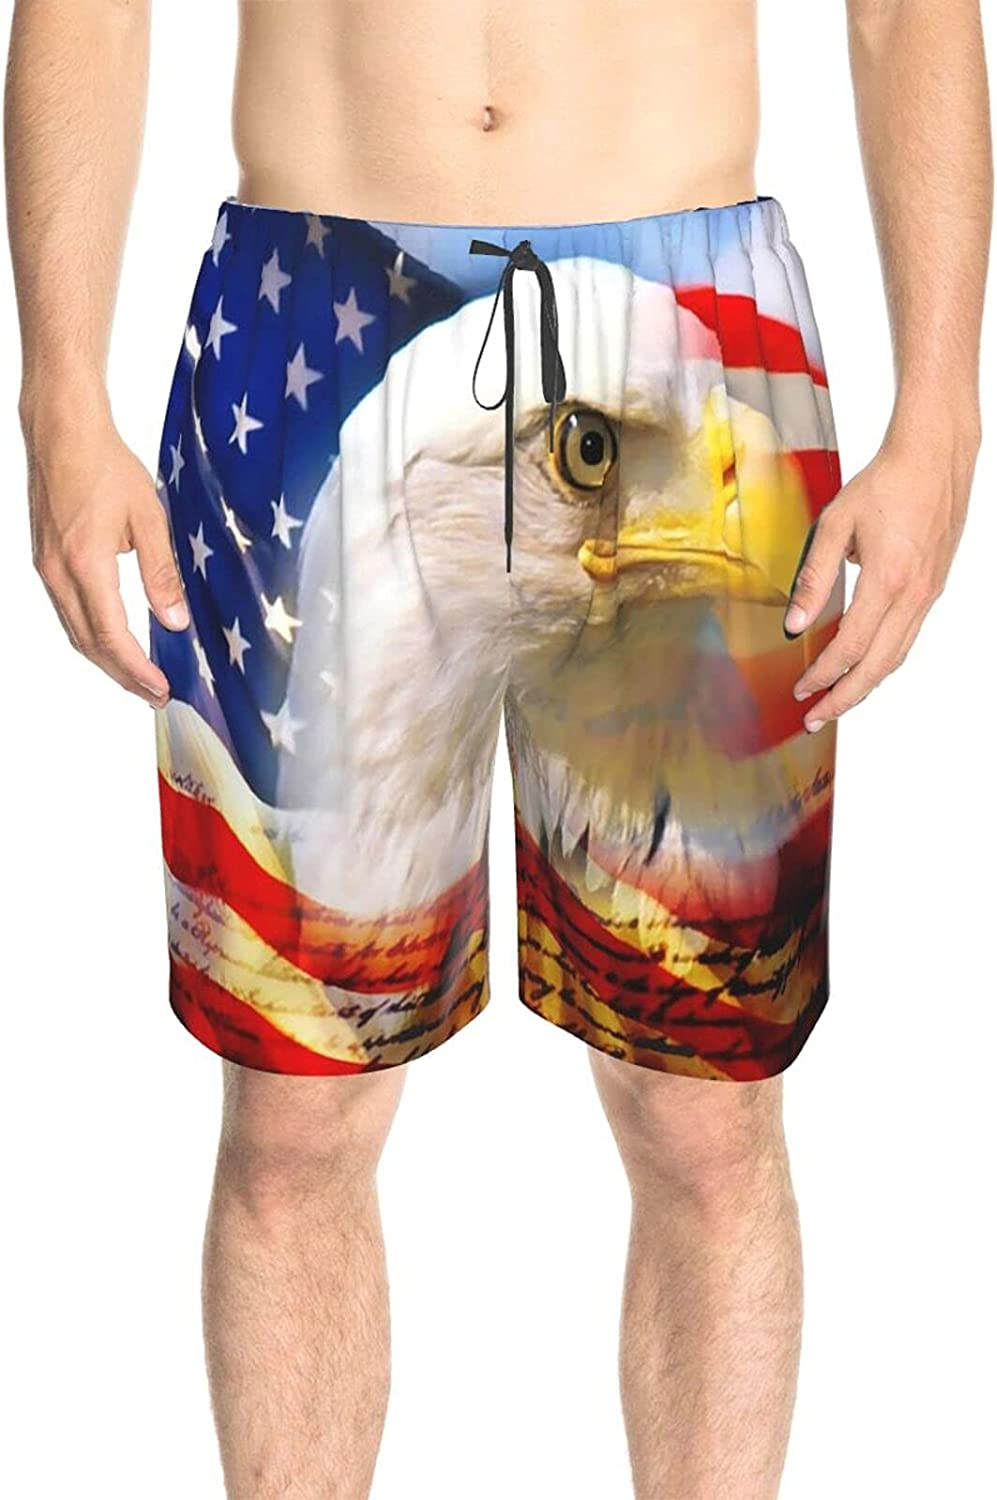 Mens Bathing Suits American Flag Bald Eagle Bathing Suit Boardshorts Drawstring 3D Printed Swimming Trunks with Lining